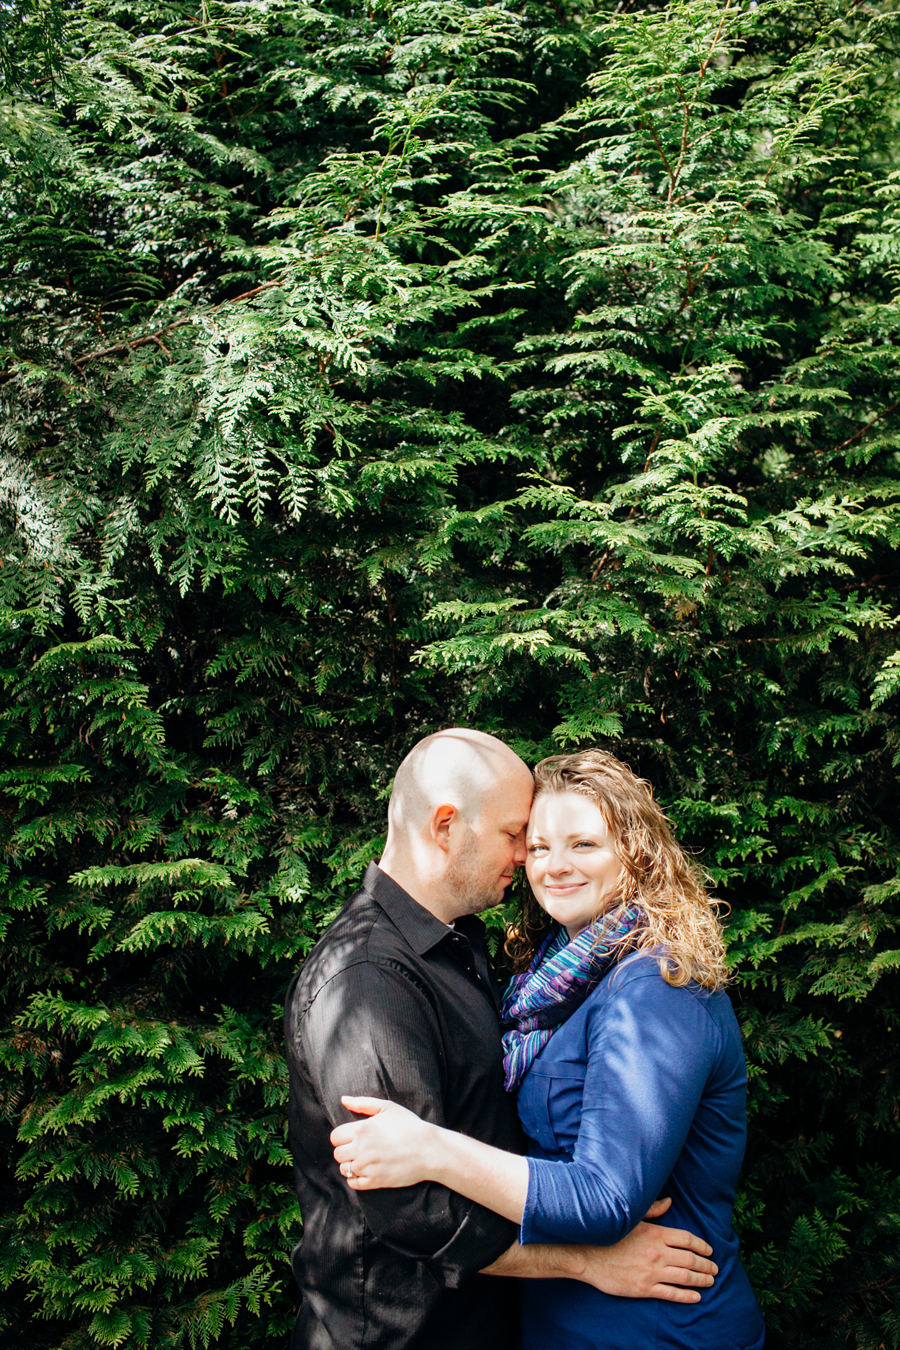 010-mill-creek-washington-engagement-katheryn-moran-photography.jpg